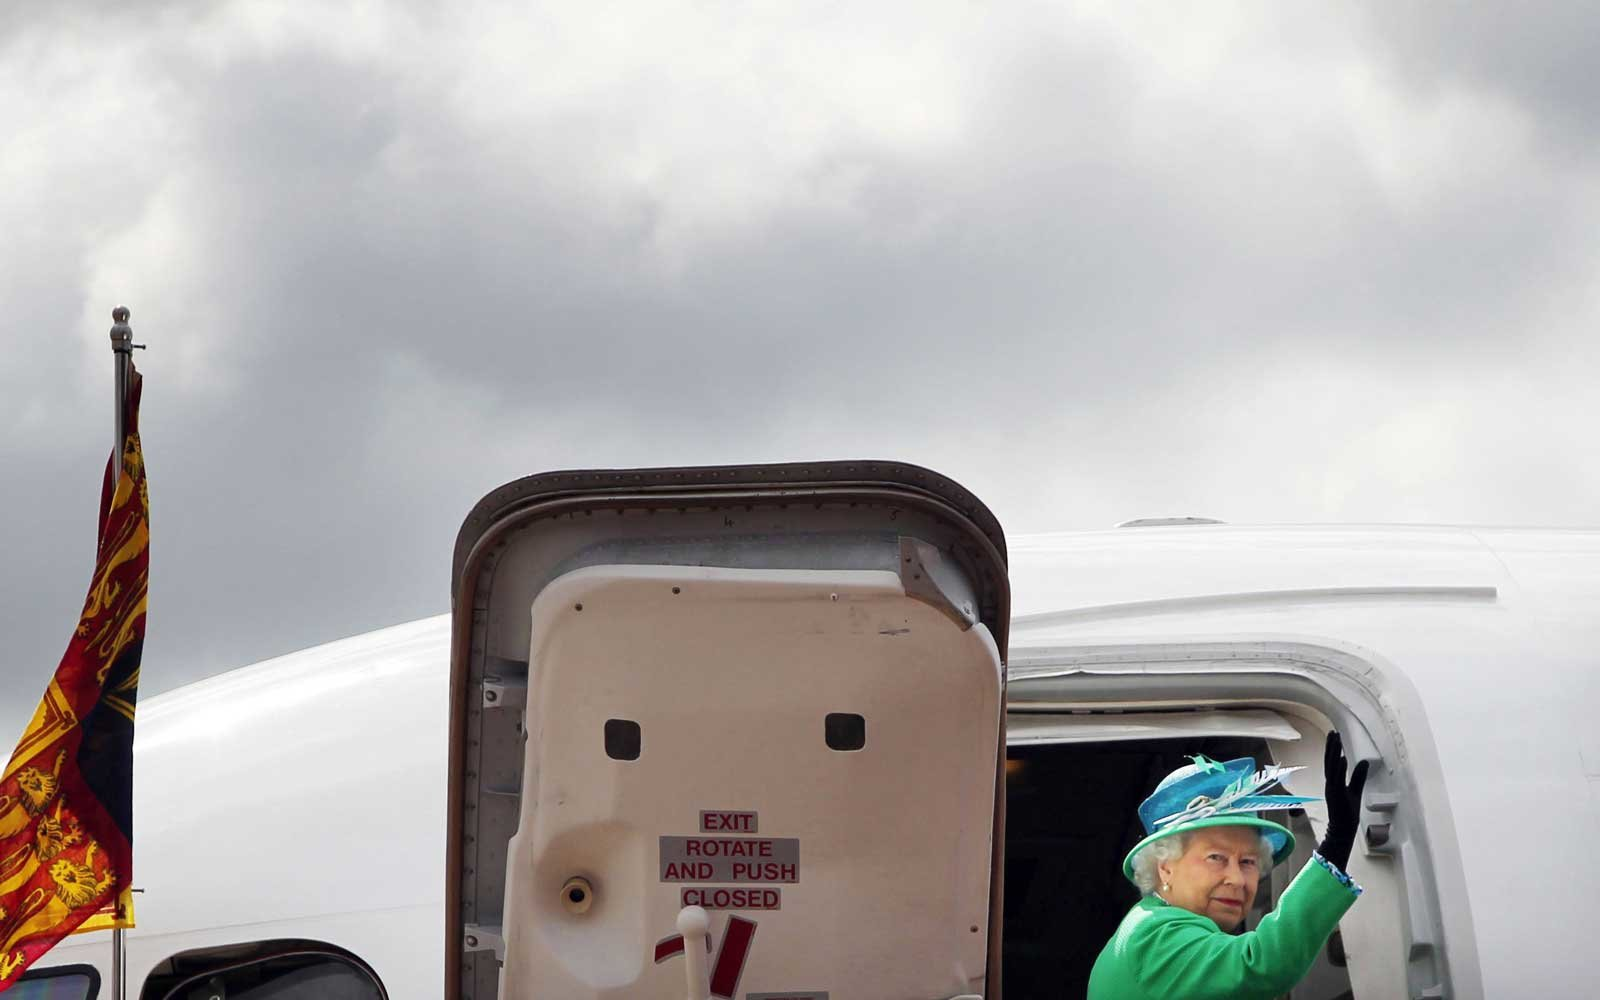 Queen Elizabeth II boards an airplane